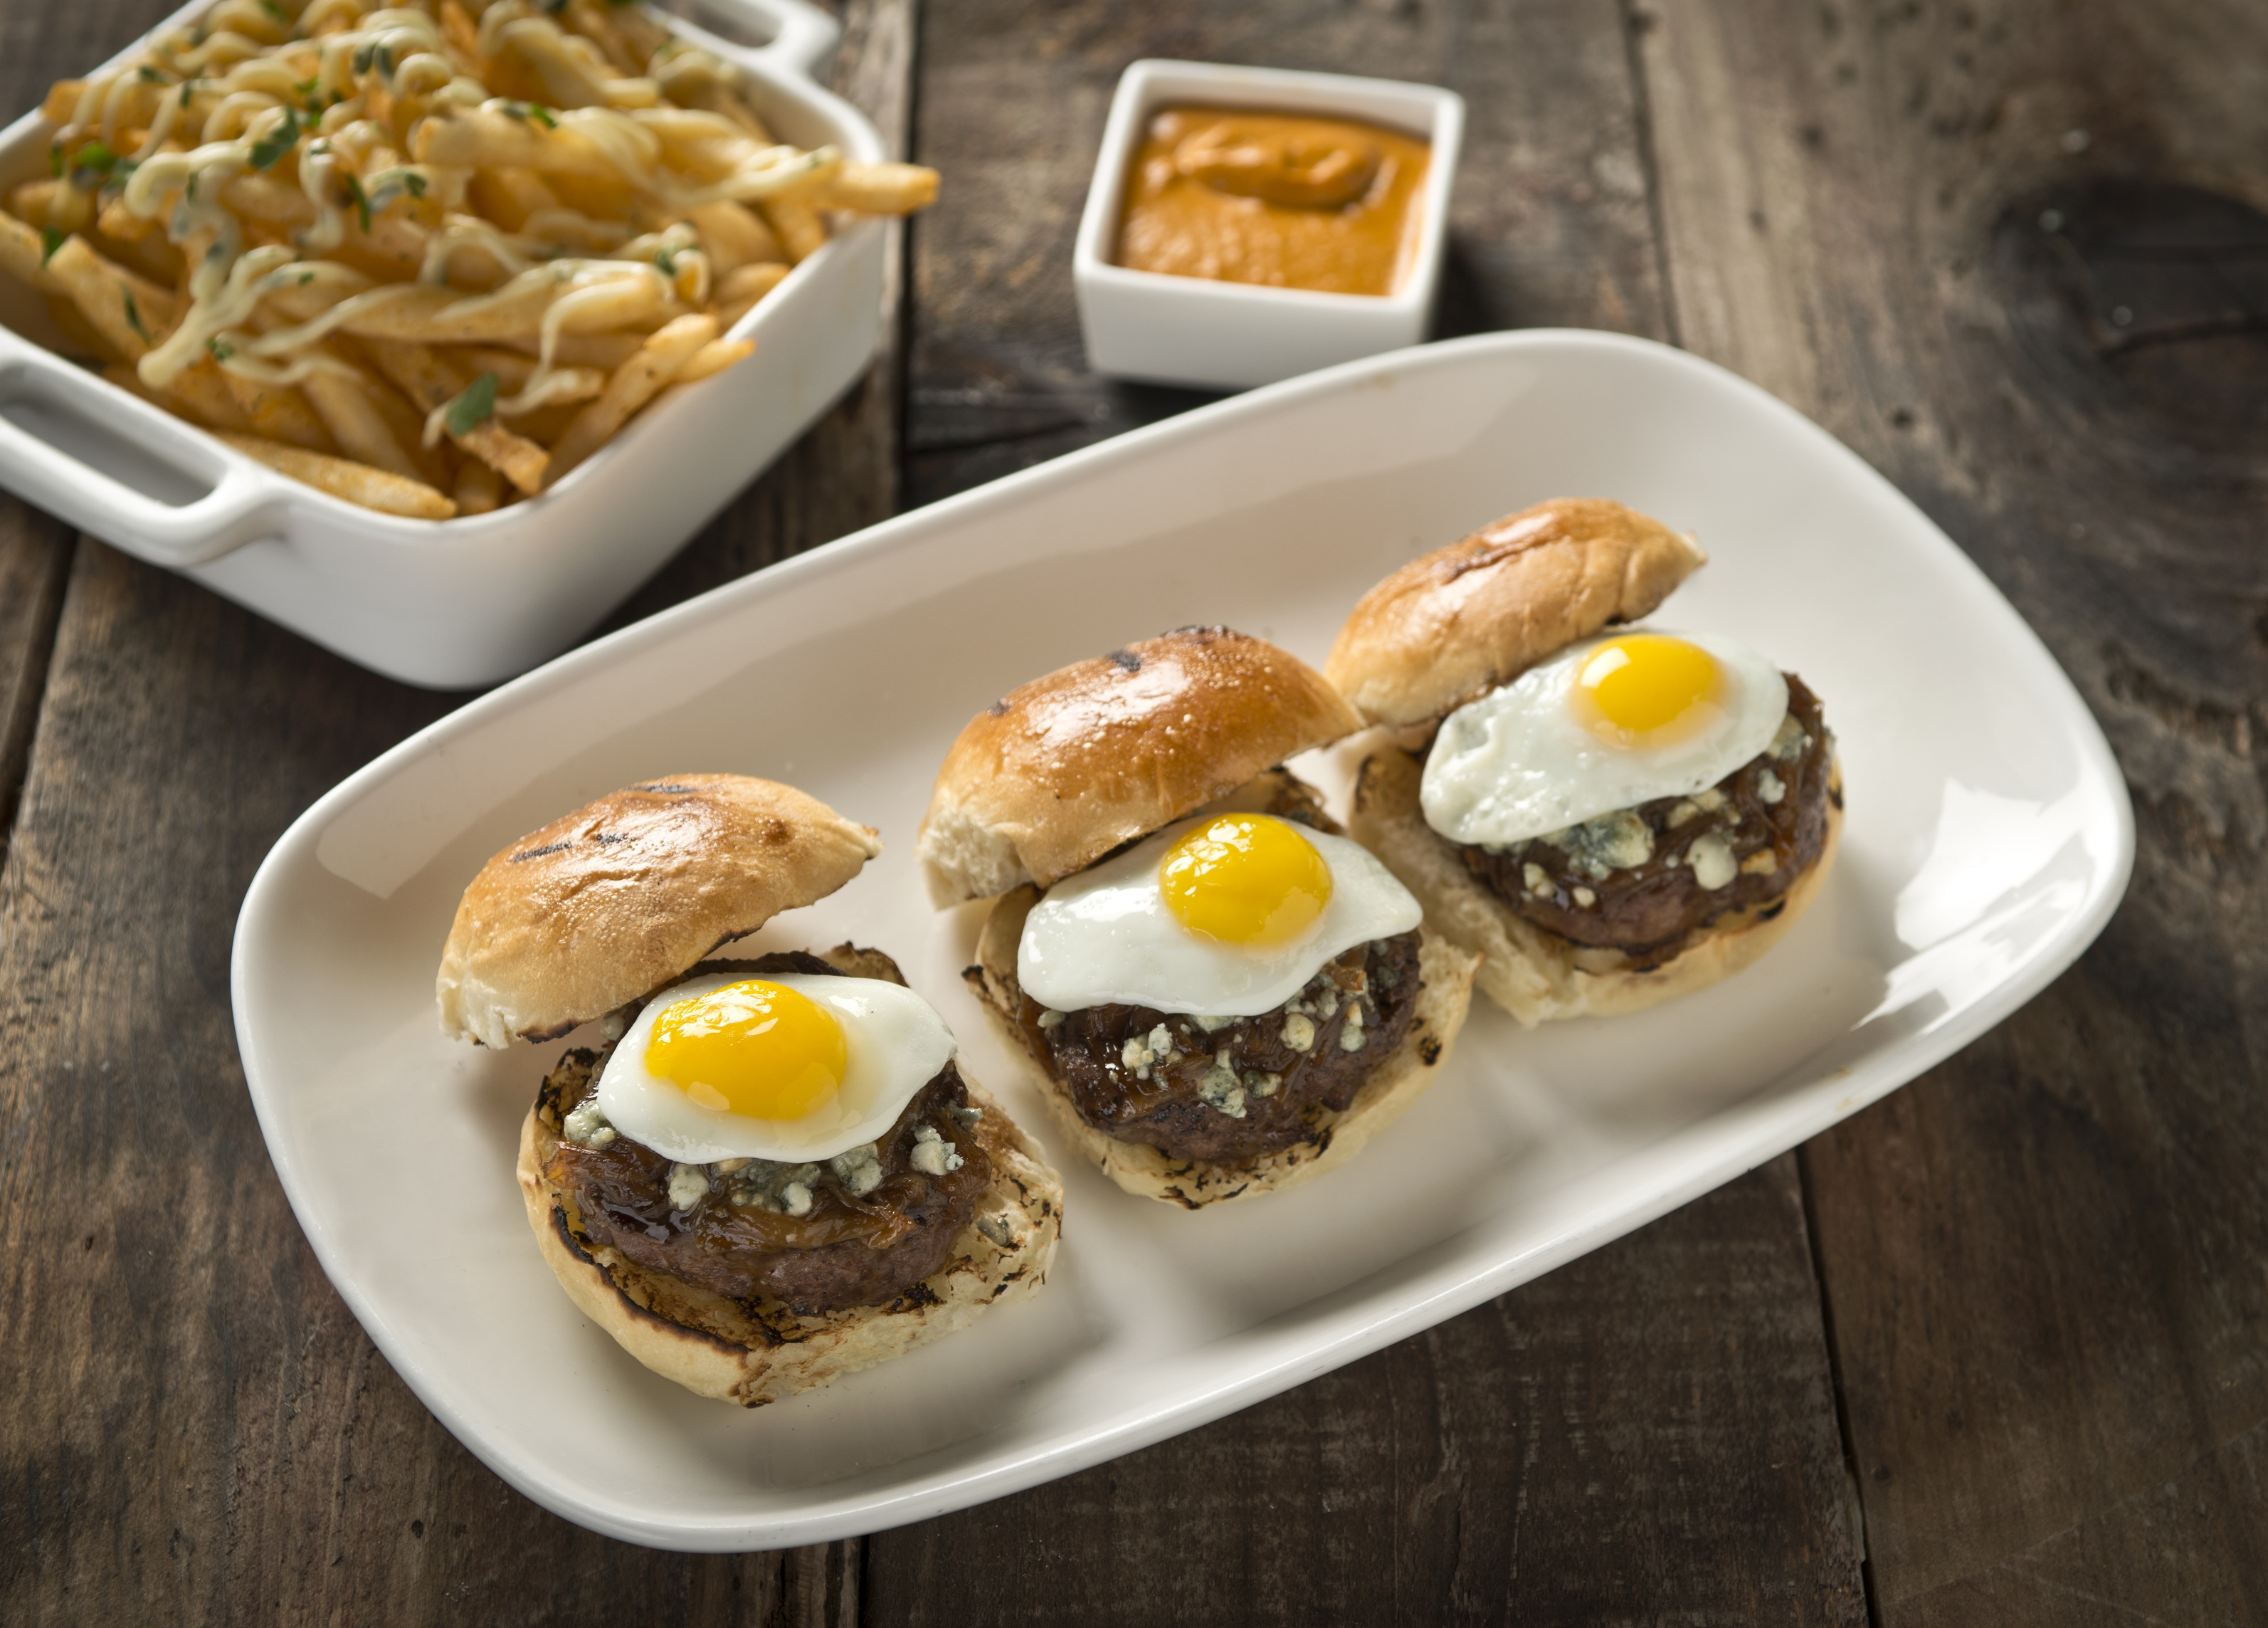 Angus mini burgers, photo courtesy of CRUSH.